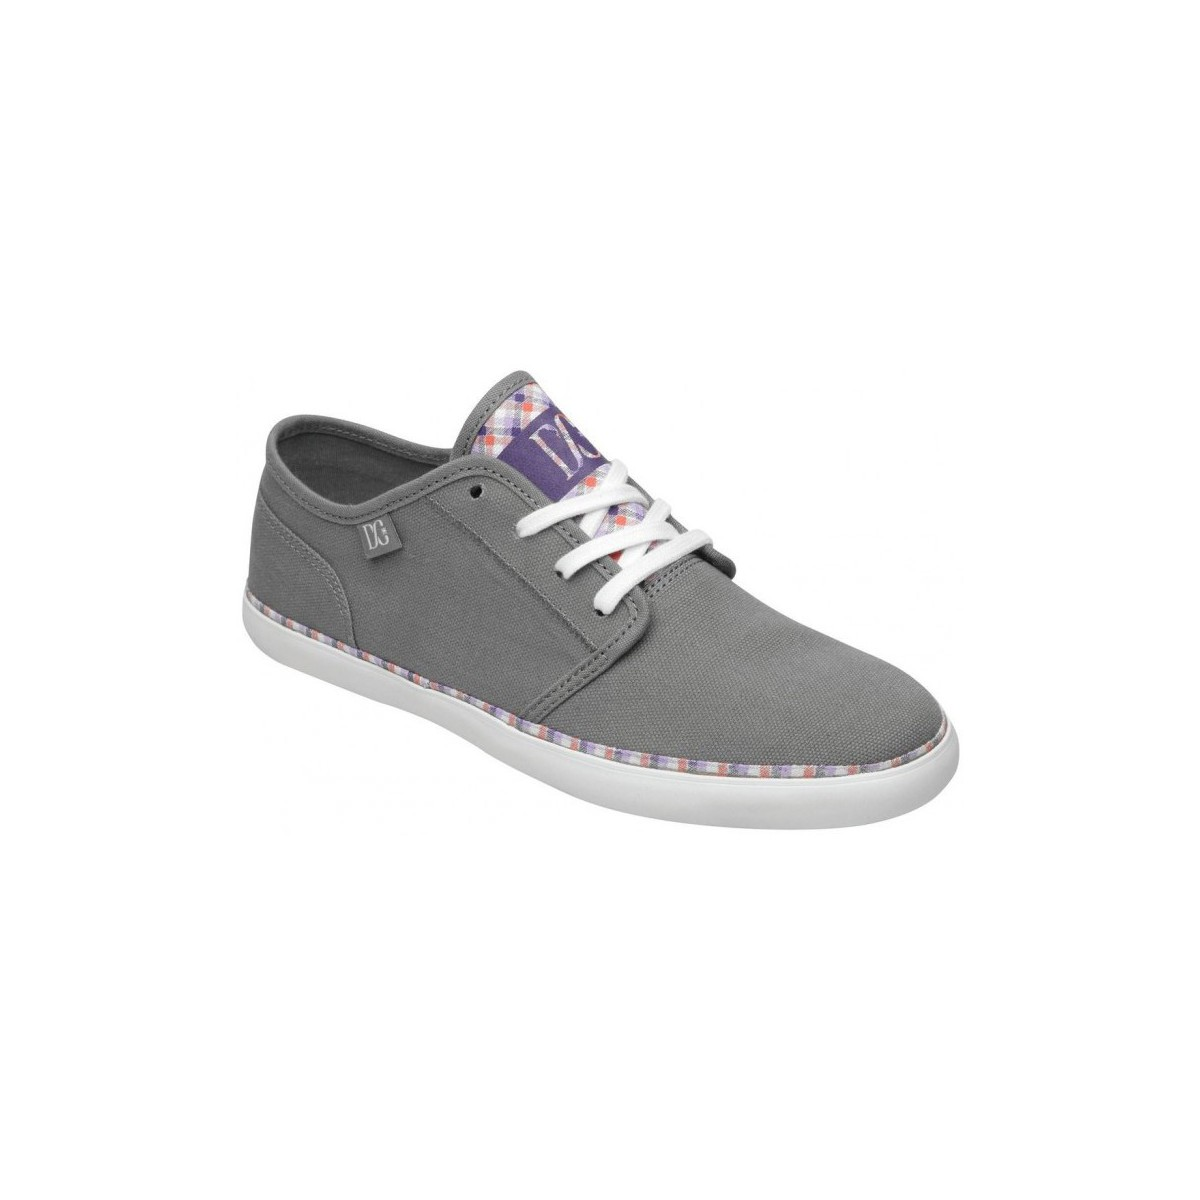 basket dc shoes chaussures studio ltz grey gris chaussures femme 25 08. Black Bedroom Furniture Sets. Home Design Ideas